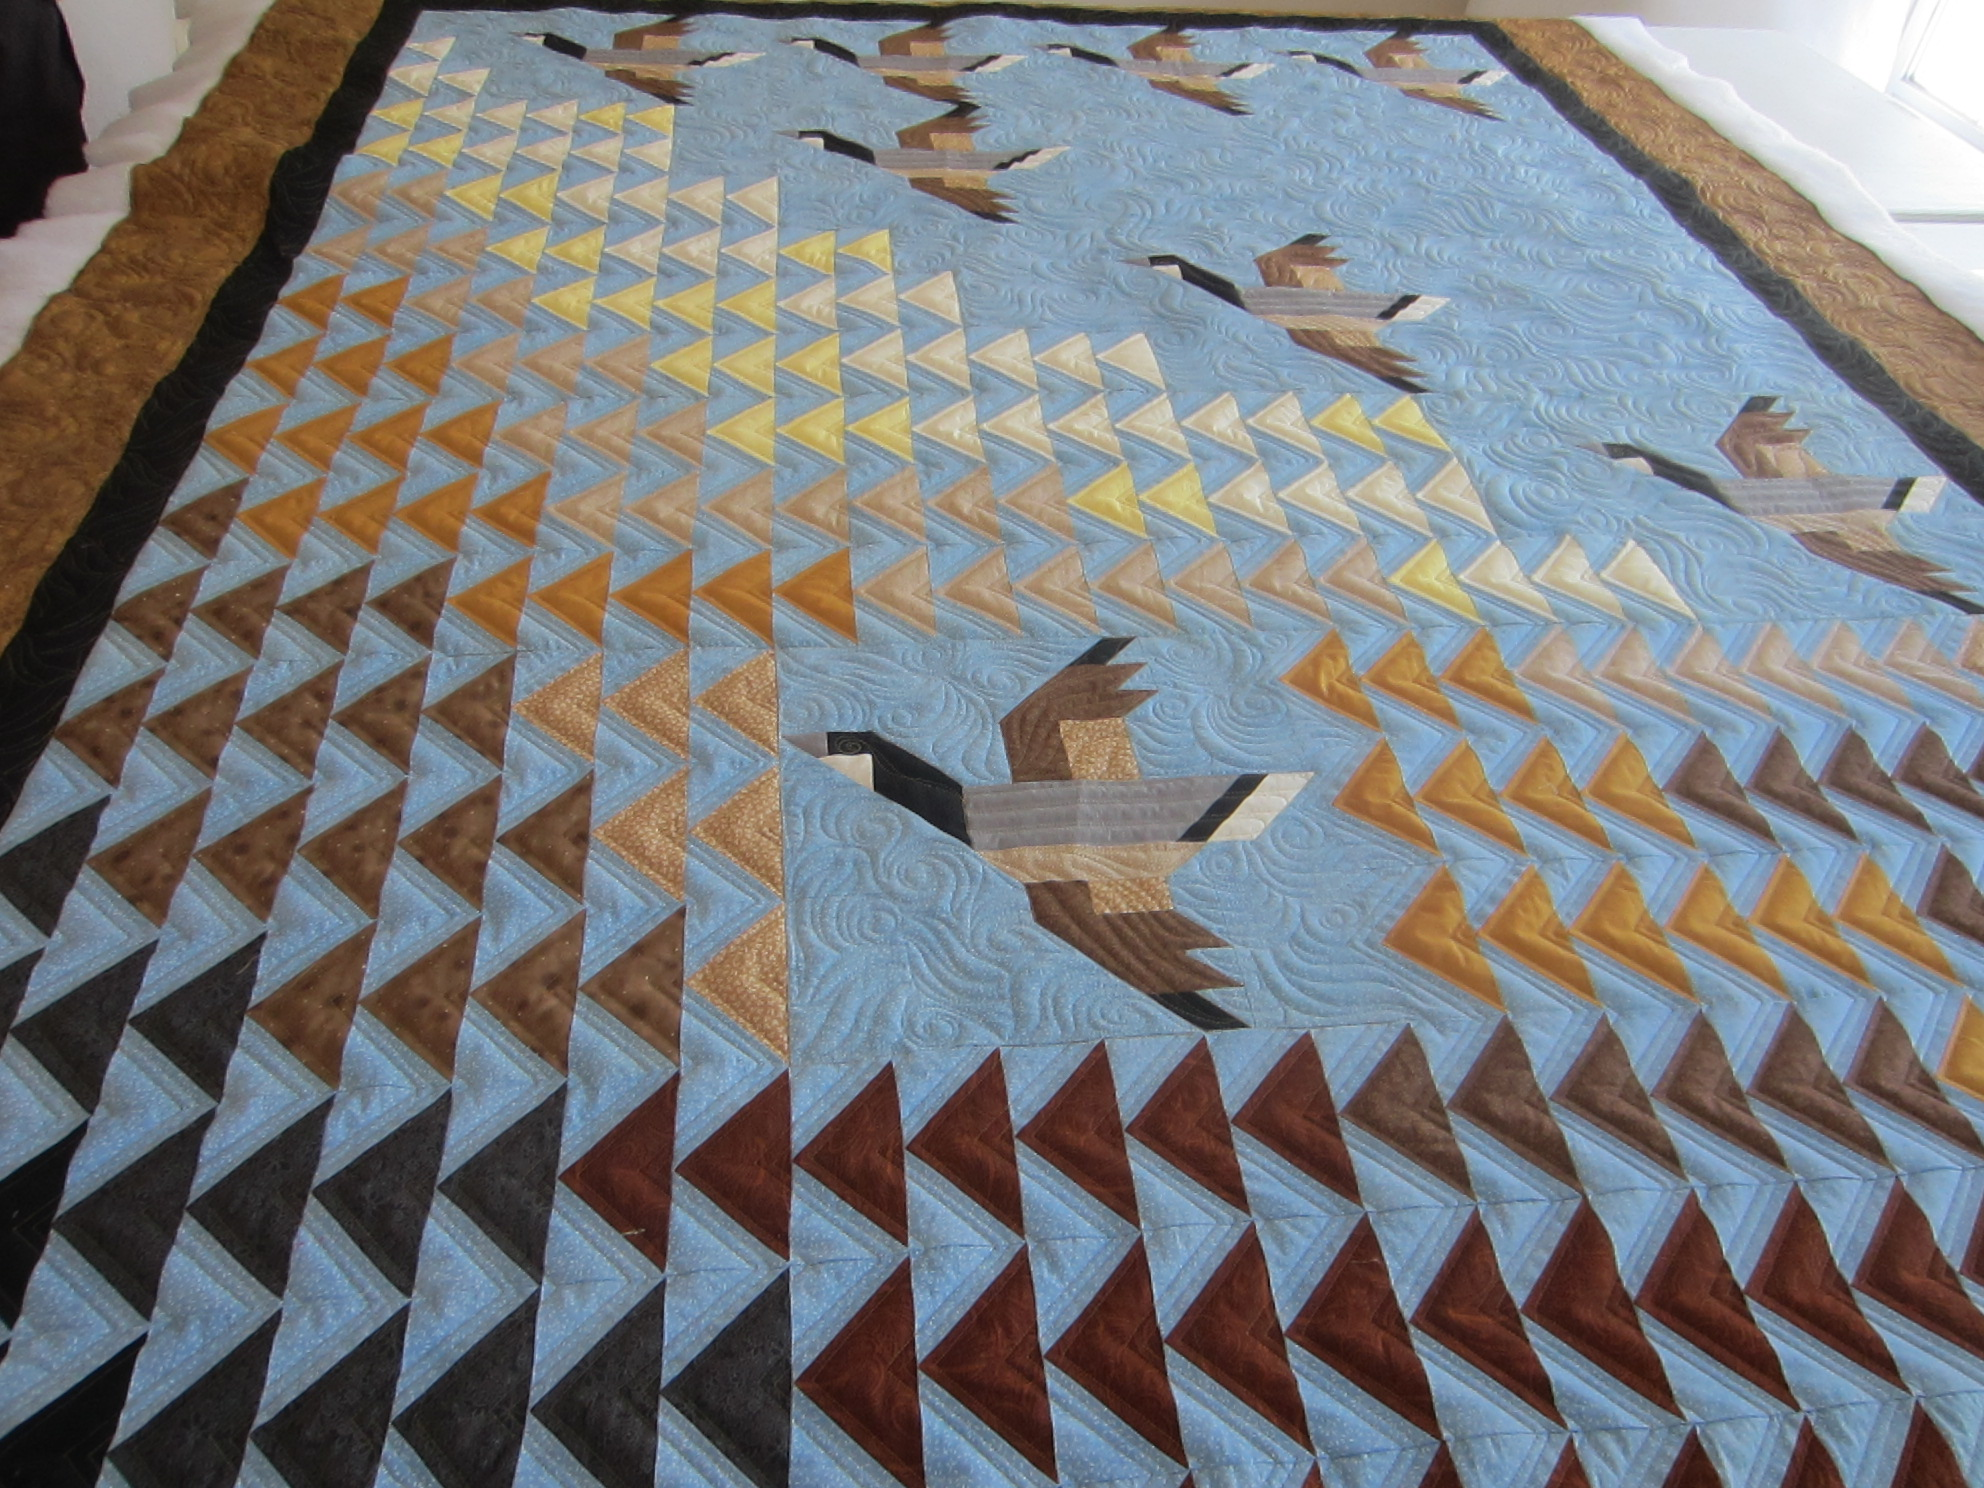 Flying Geese Quilt | pamelajeannestudio : flying geese quilting - Adamdwight.com